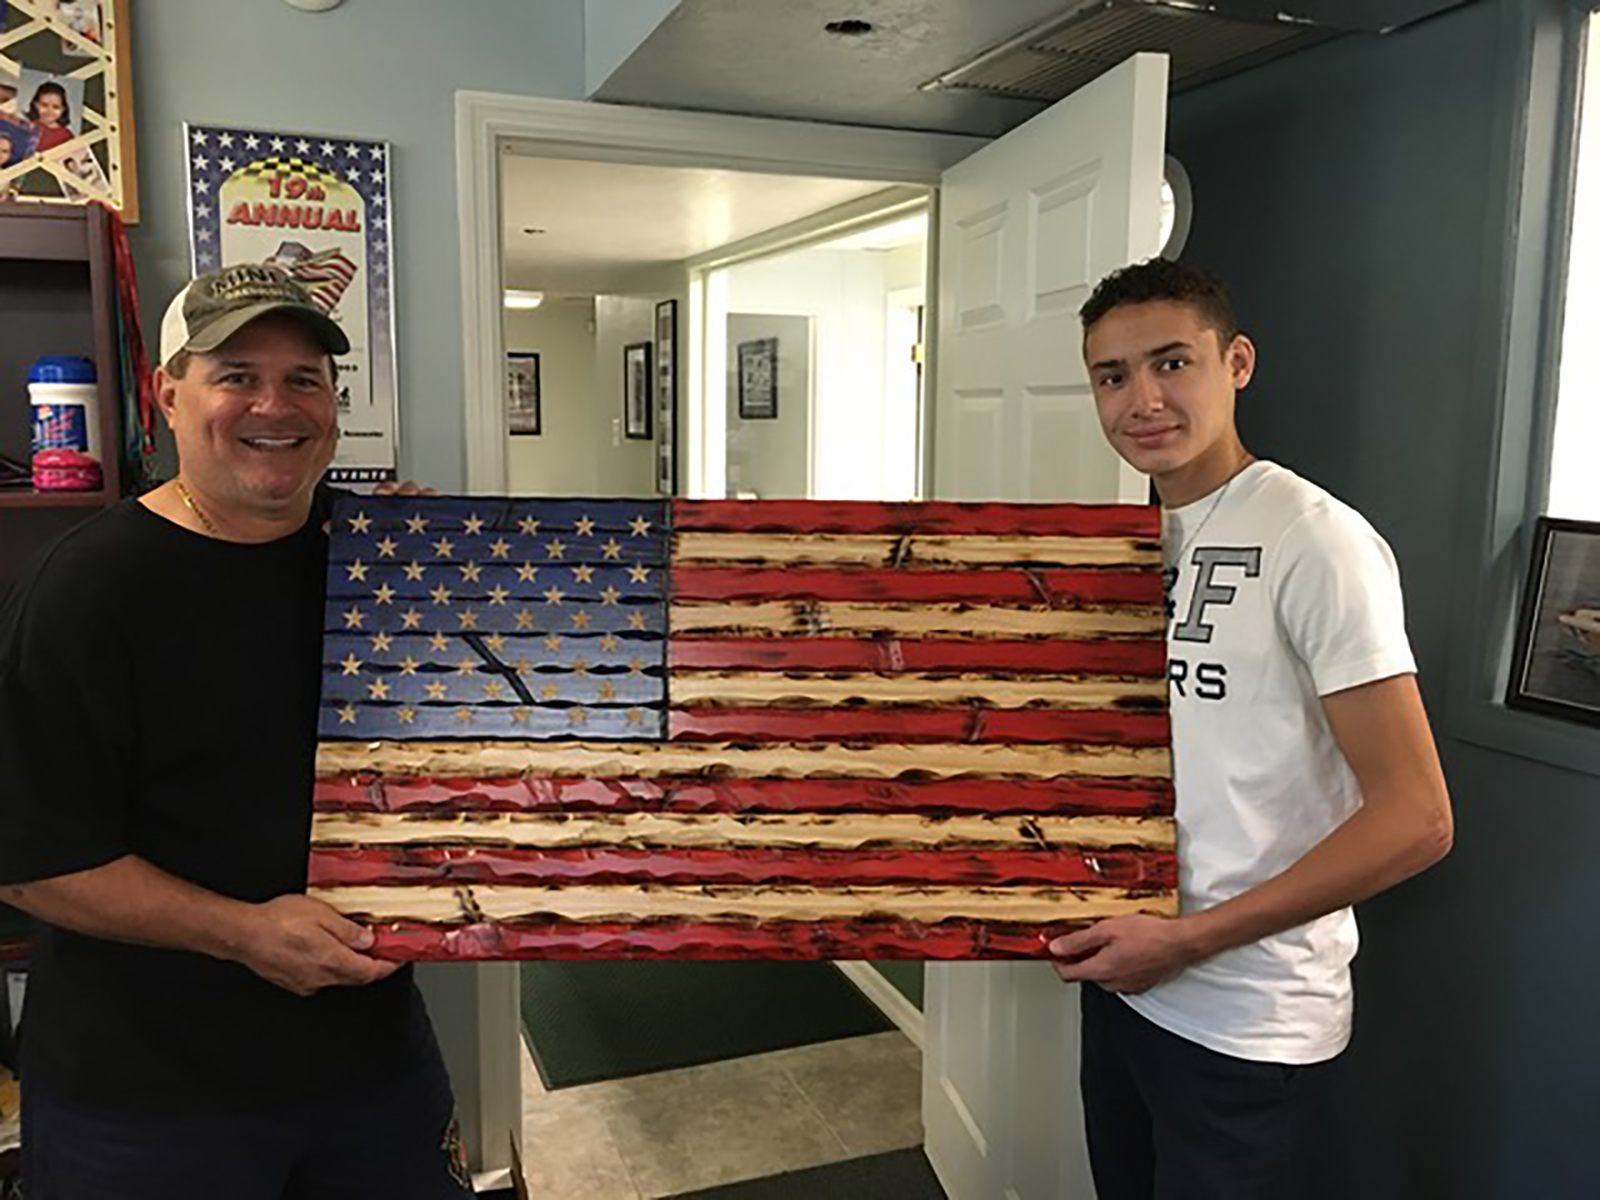 15-year-old boy is carving wooden flags to support 'forgotten heroes,' like veterans and first responders, during the pandemic